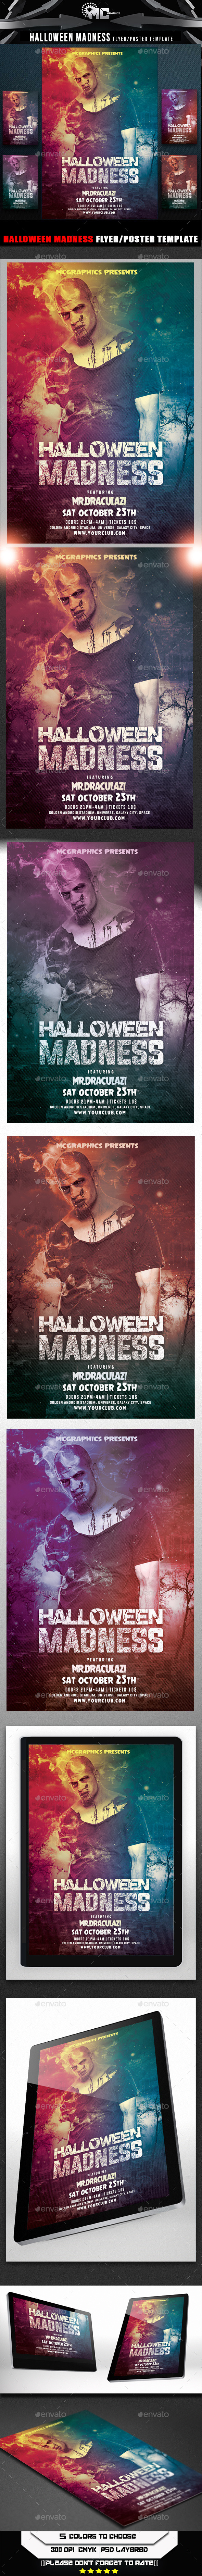 Halloween Madness Flyer Template - Flyers Print Templates